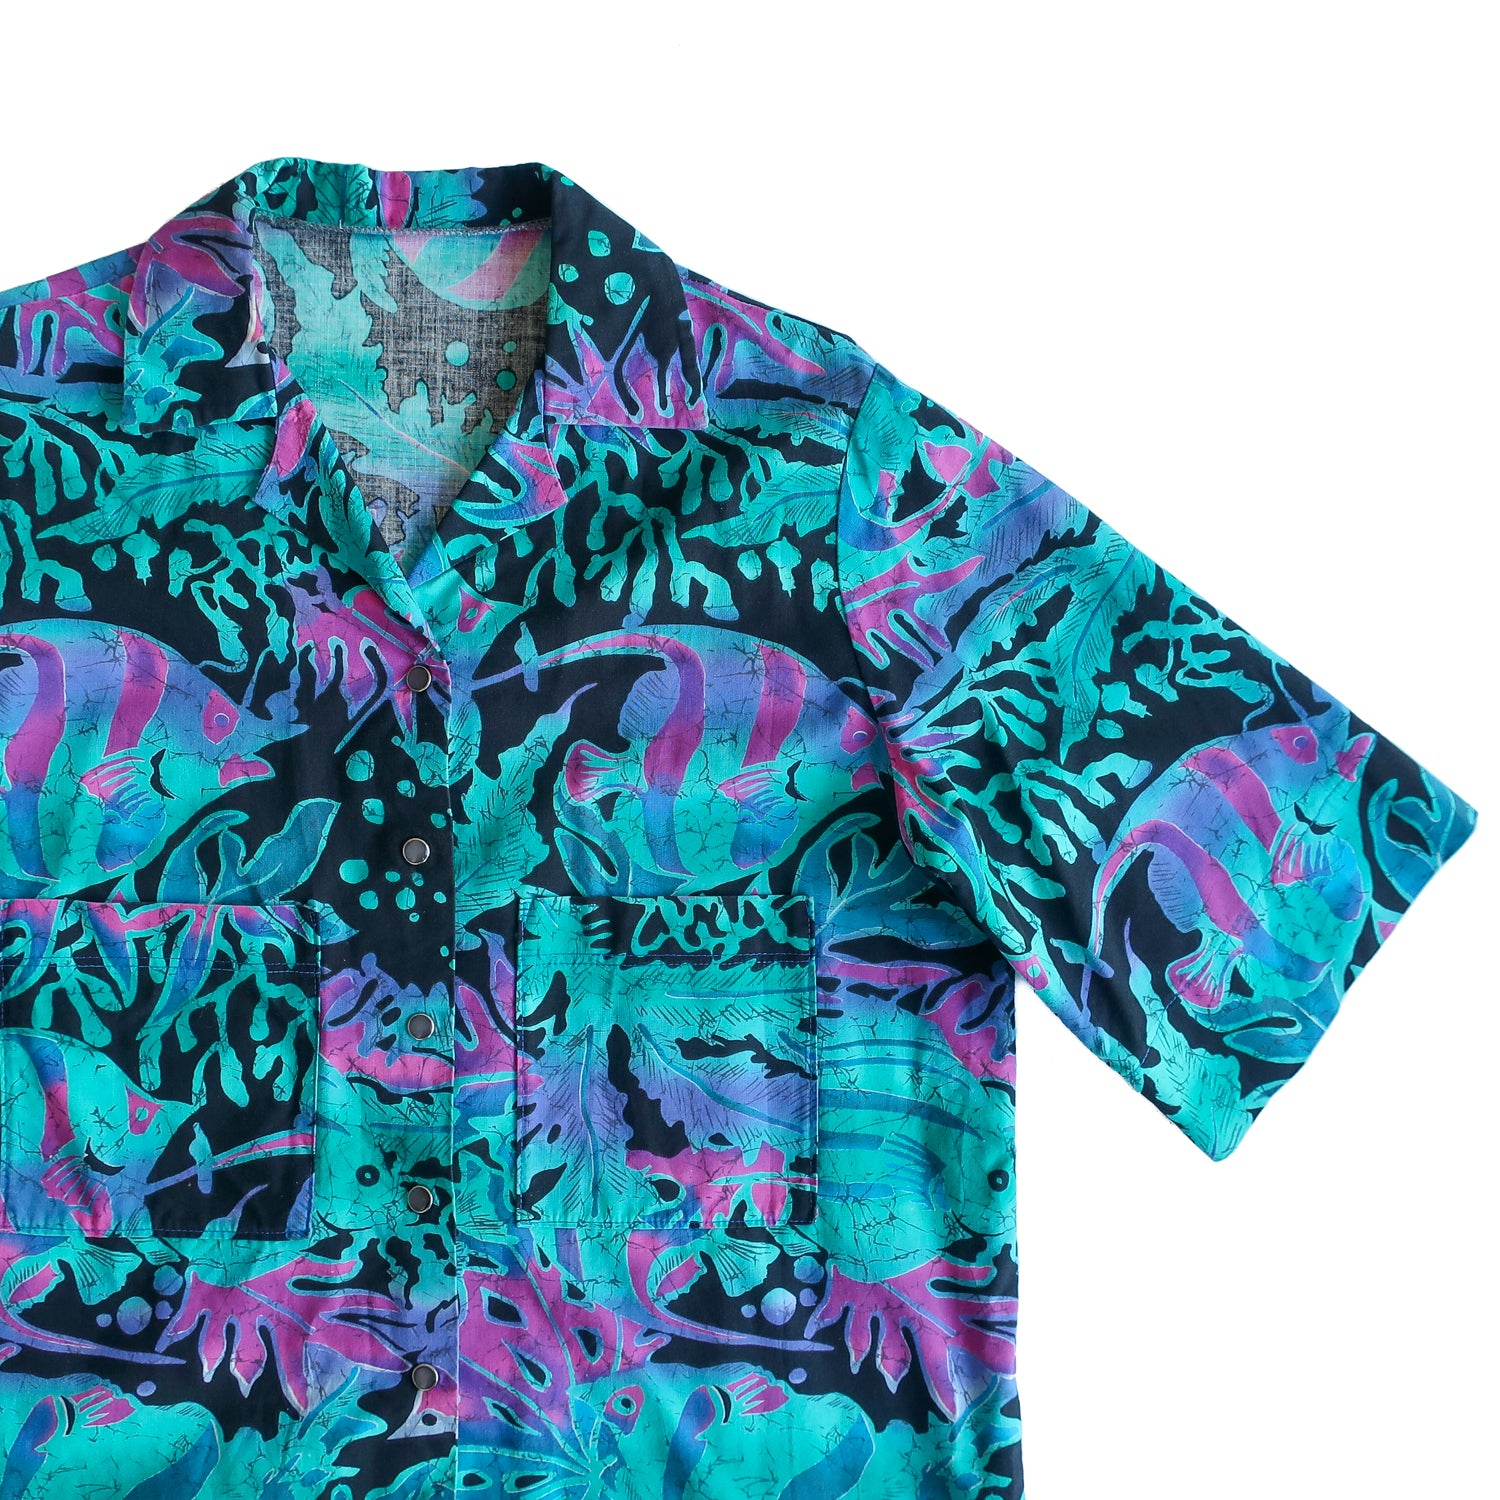 Second Room Vintage Clothing. Vintage 90s tropical fish print top, with pearlized silver snaps, no top button, and two front patch pockets that sit low on the chest. Free Shipping on all orders within North America.